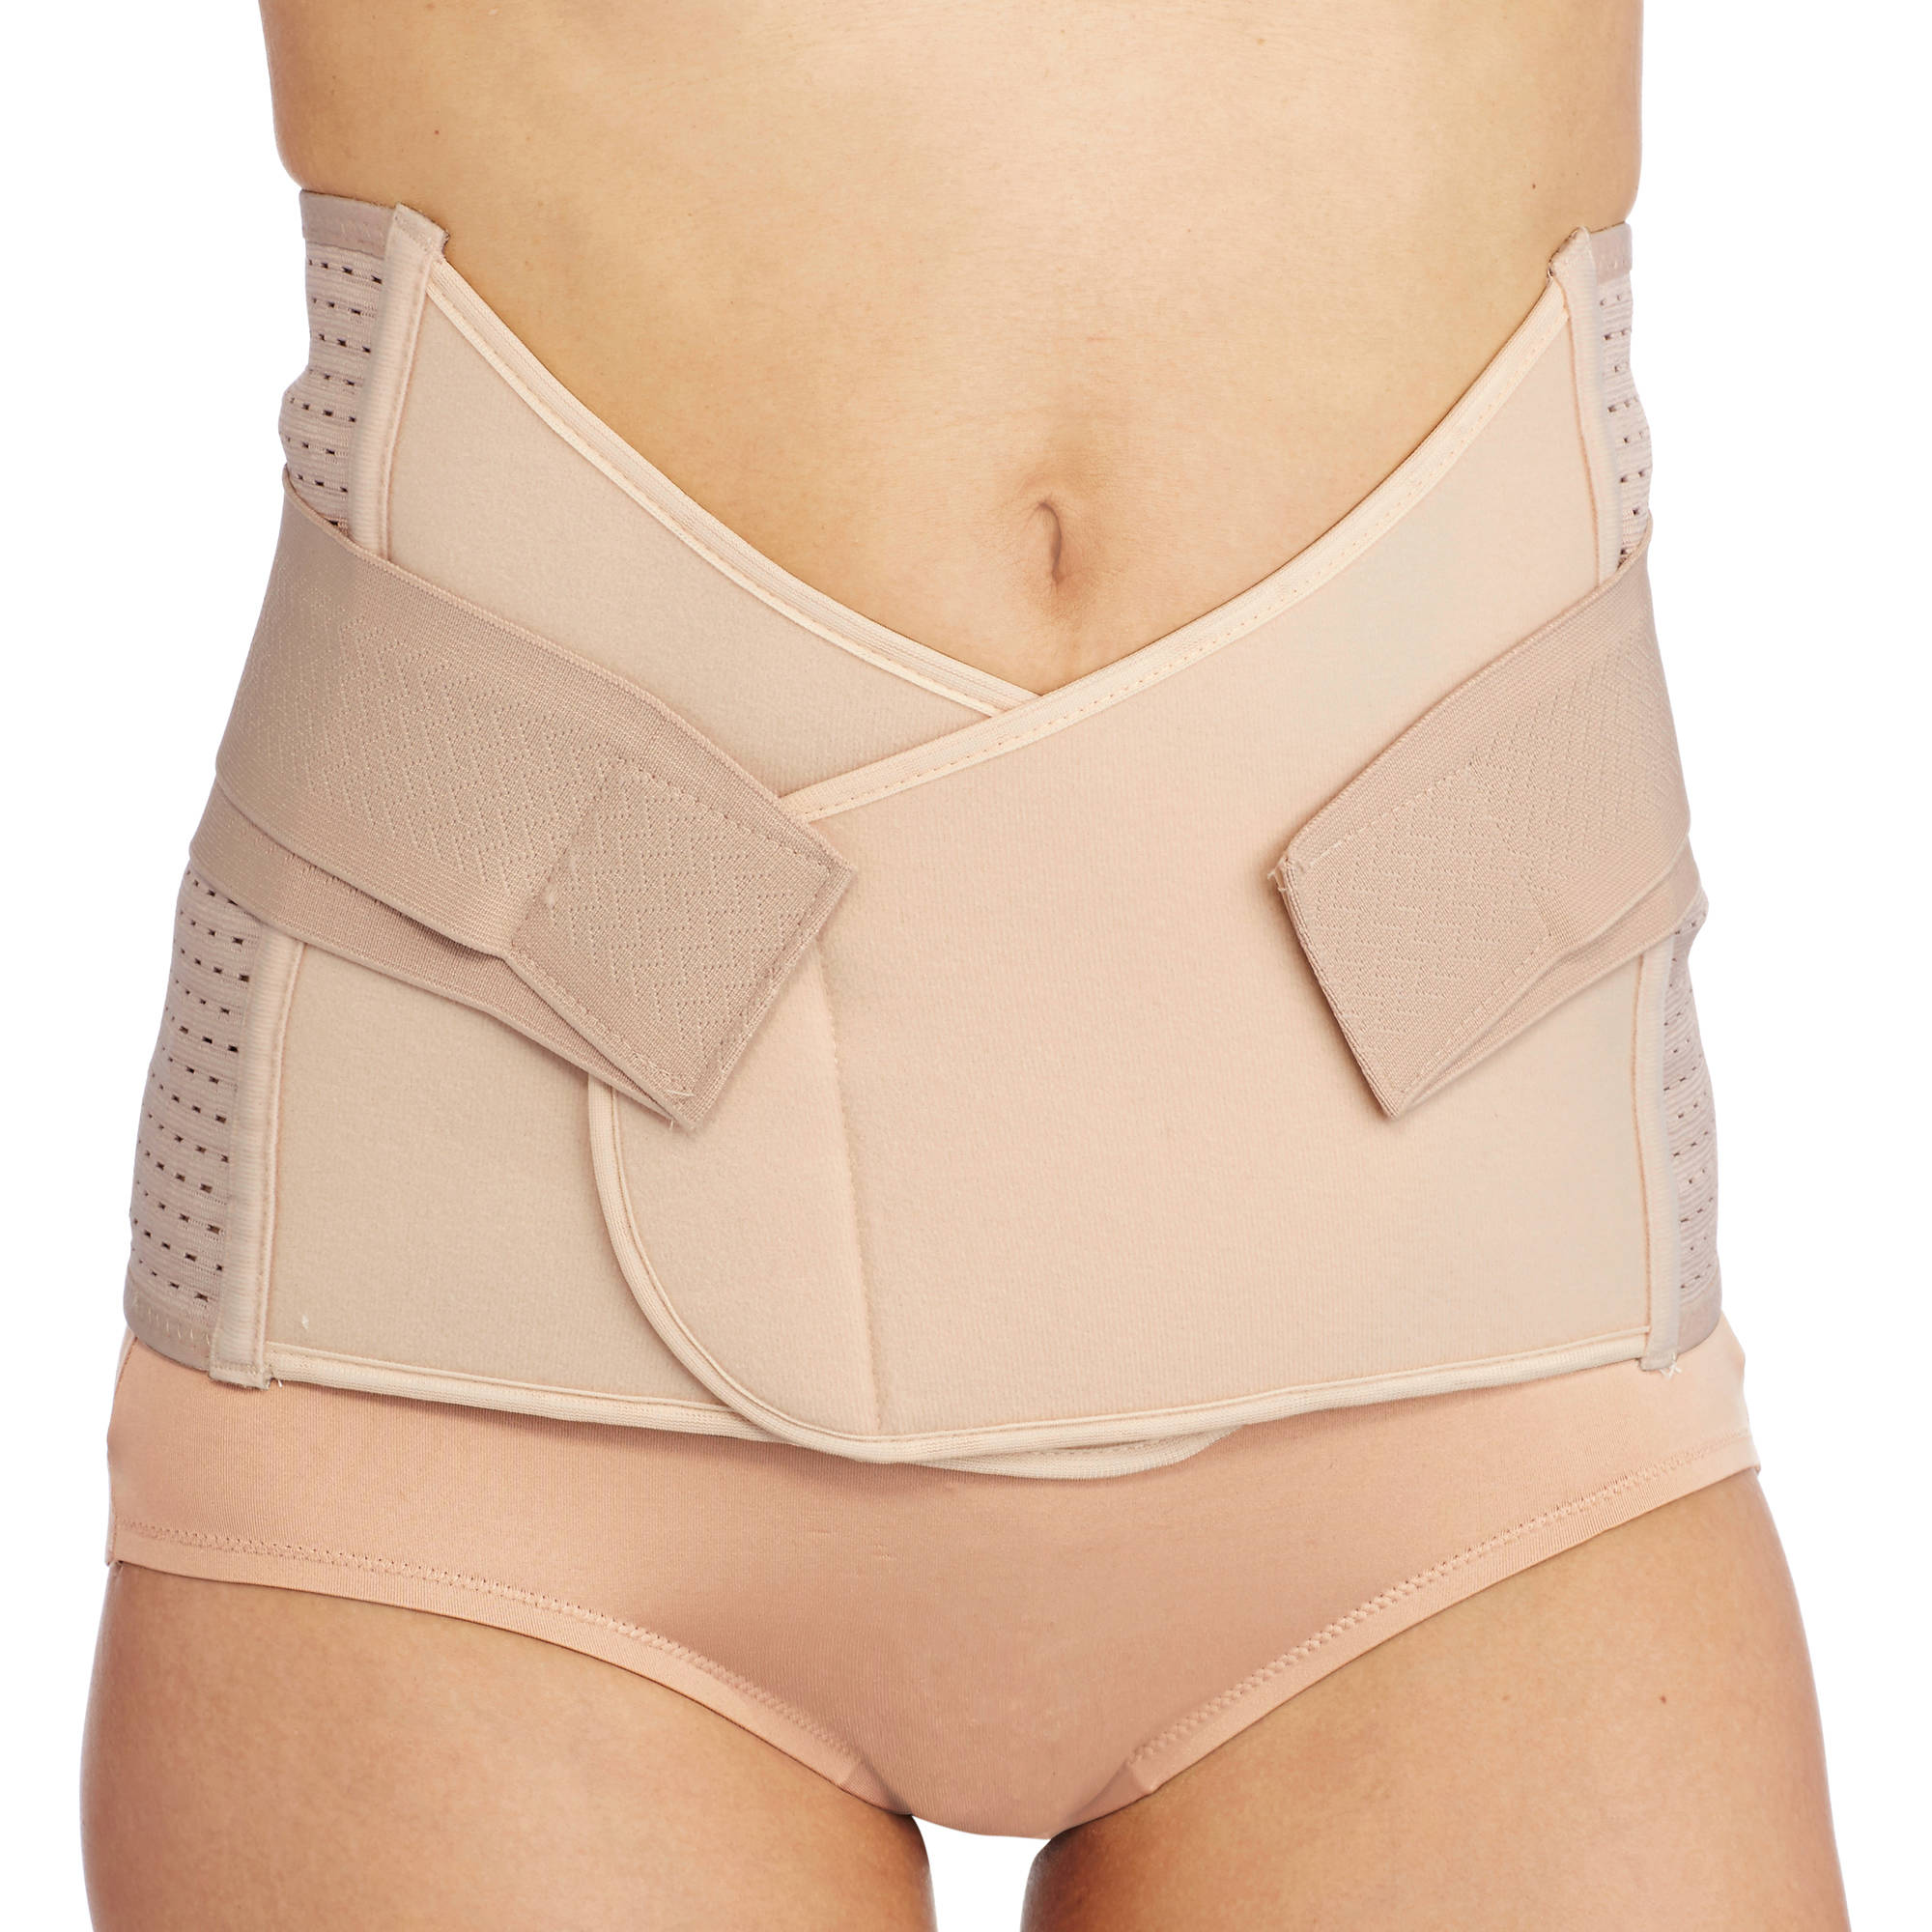 Maternity Postpartum Recovery Support Belt